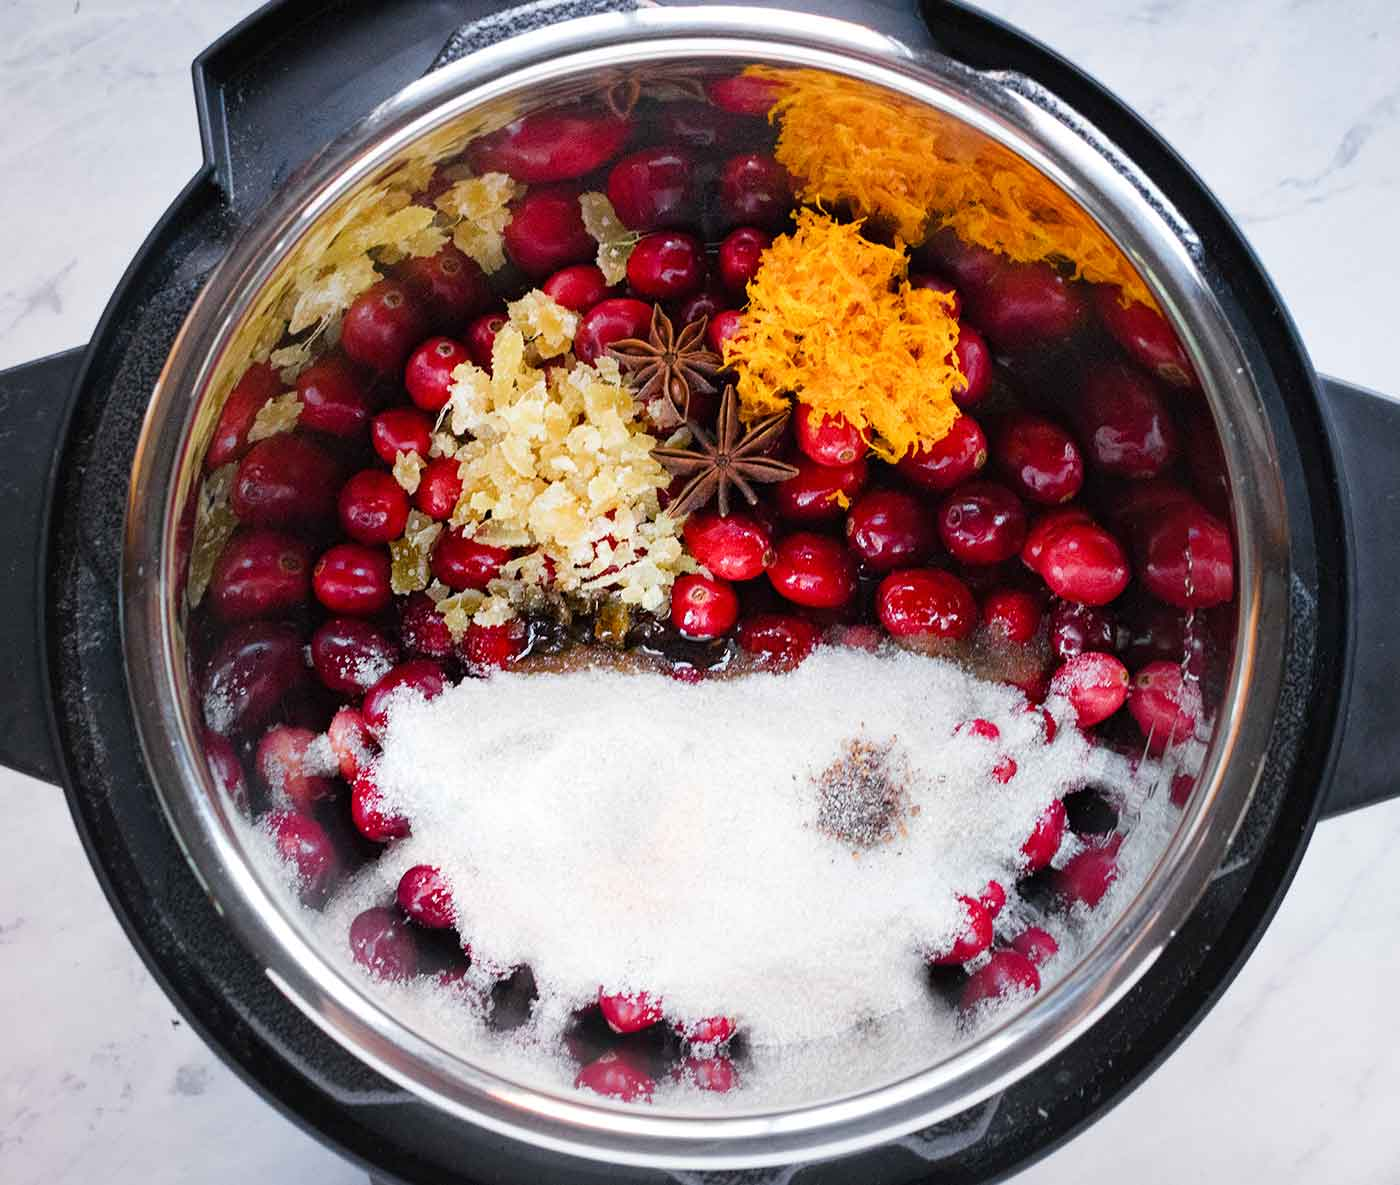 Ingredients for Instant Pot Spiced Cranberry Sauce, ready to pressure cook